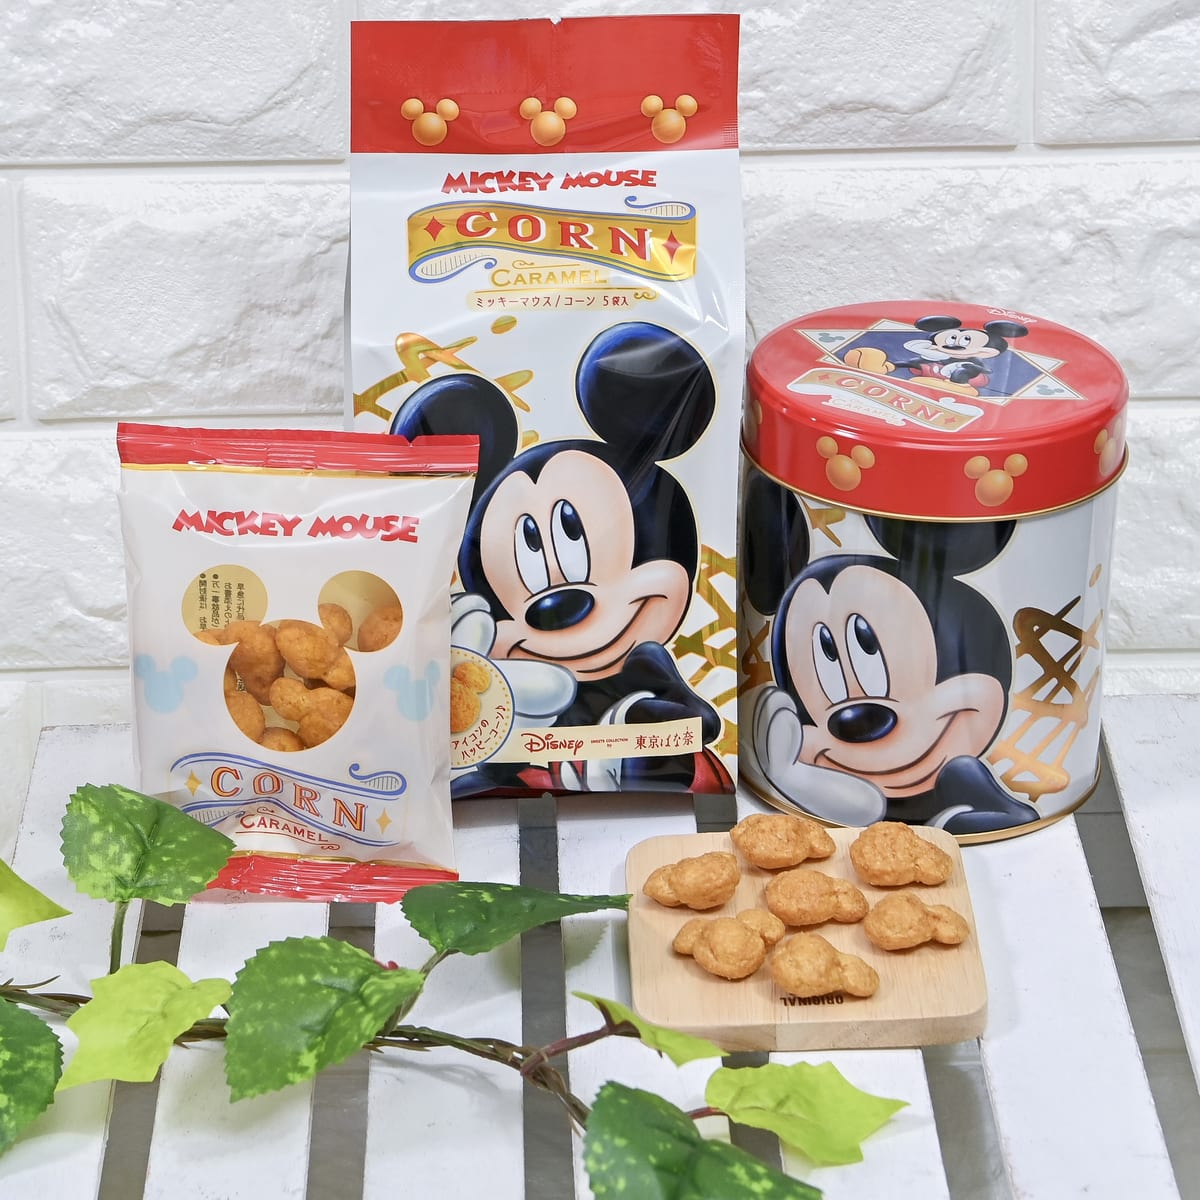 Disney SWEETS COLLECTION by 東京ばな奈「ミッキーマウス/コーン キャラメル味」